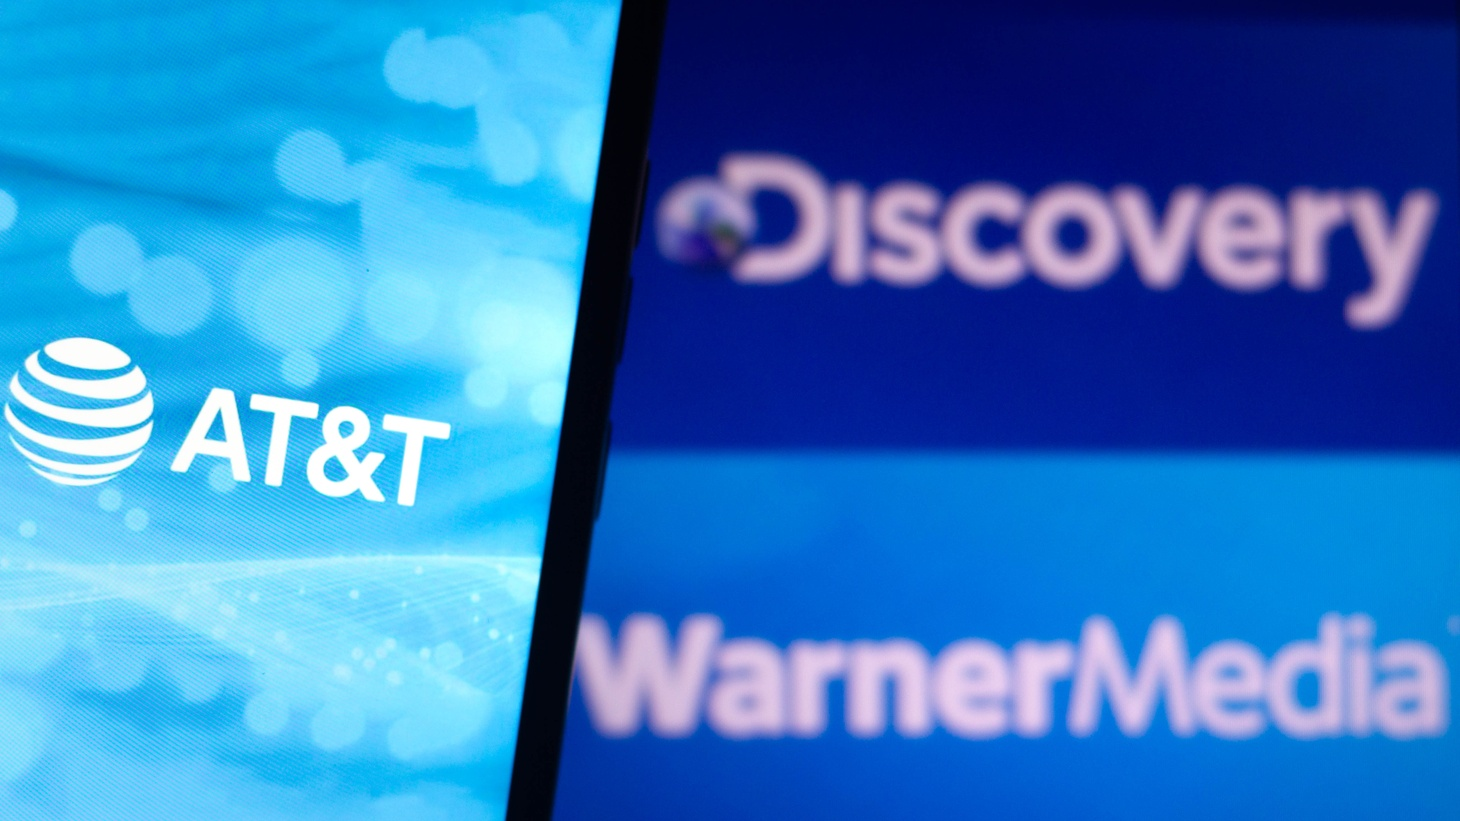 AT&T is spinning off WarnerMedia to Discovery, but the deal won't close any time soon because it is subject to federal review.